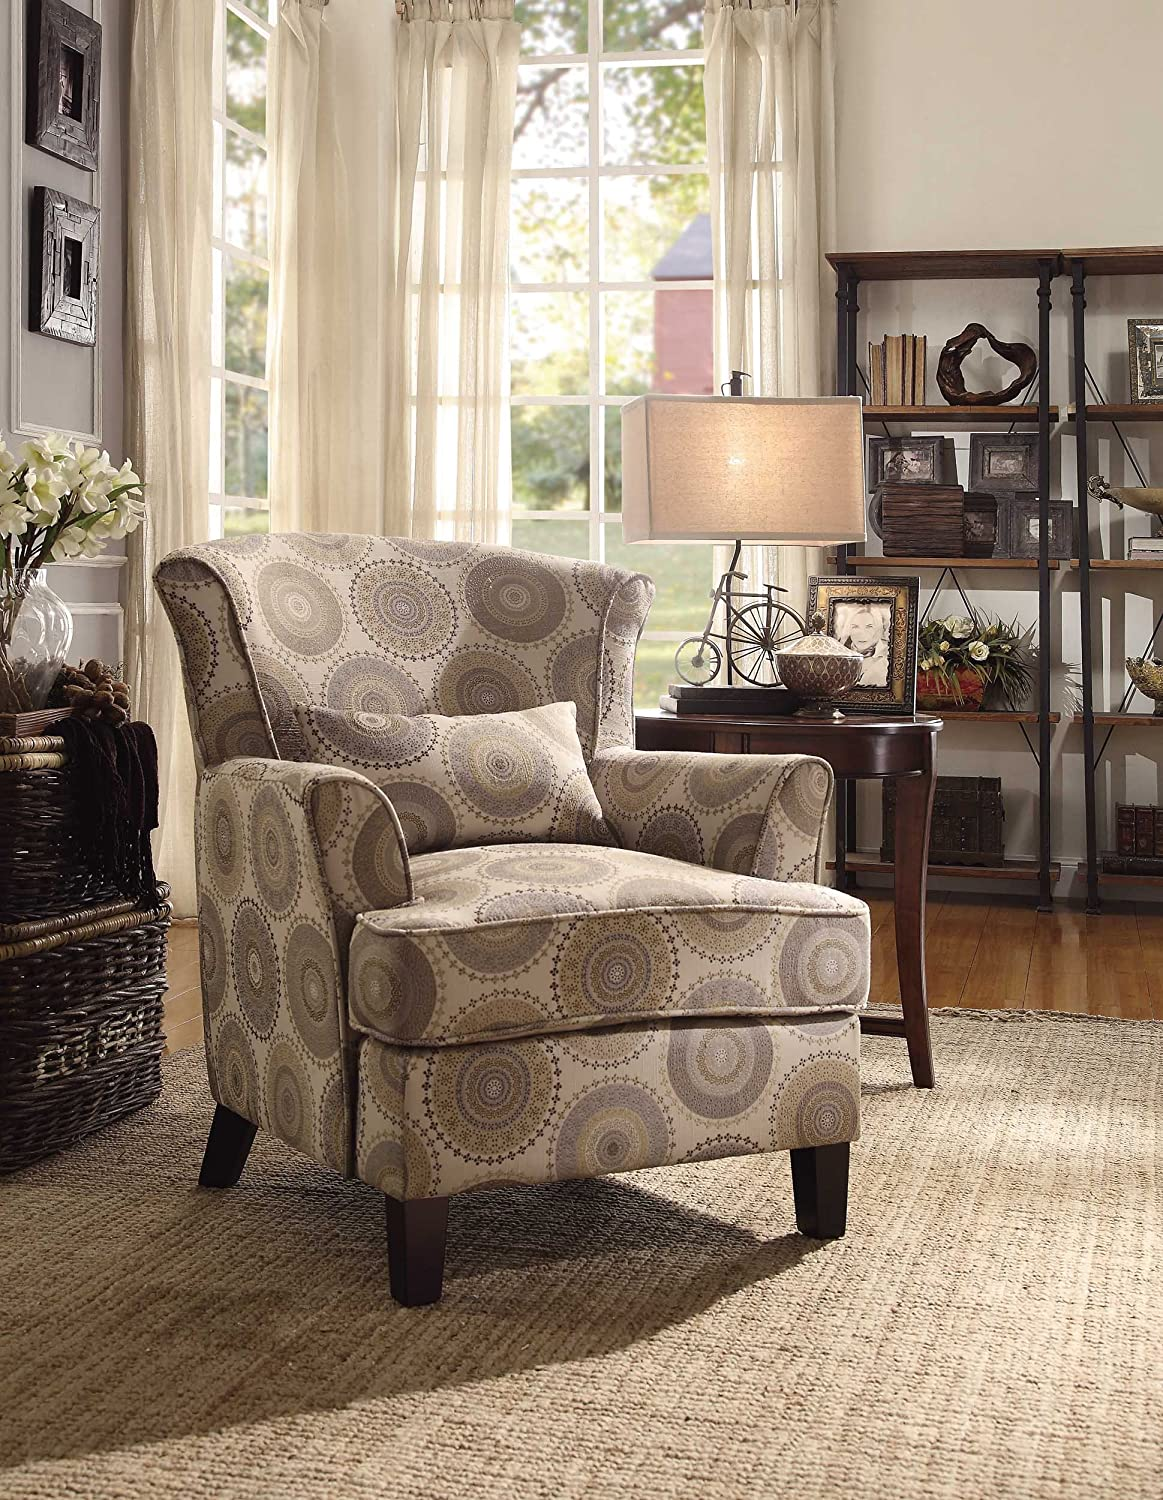 Superb Amazon.com: Homelegance Nicolo Wing Back Accent Chair With Pillow In Grey  And Brown Medallion Print: Kitchen U0026 Dining Part 16